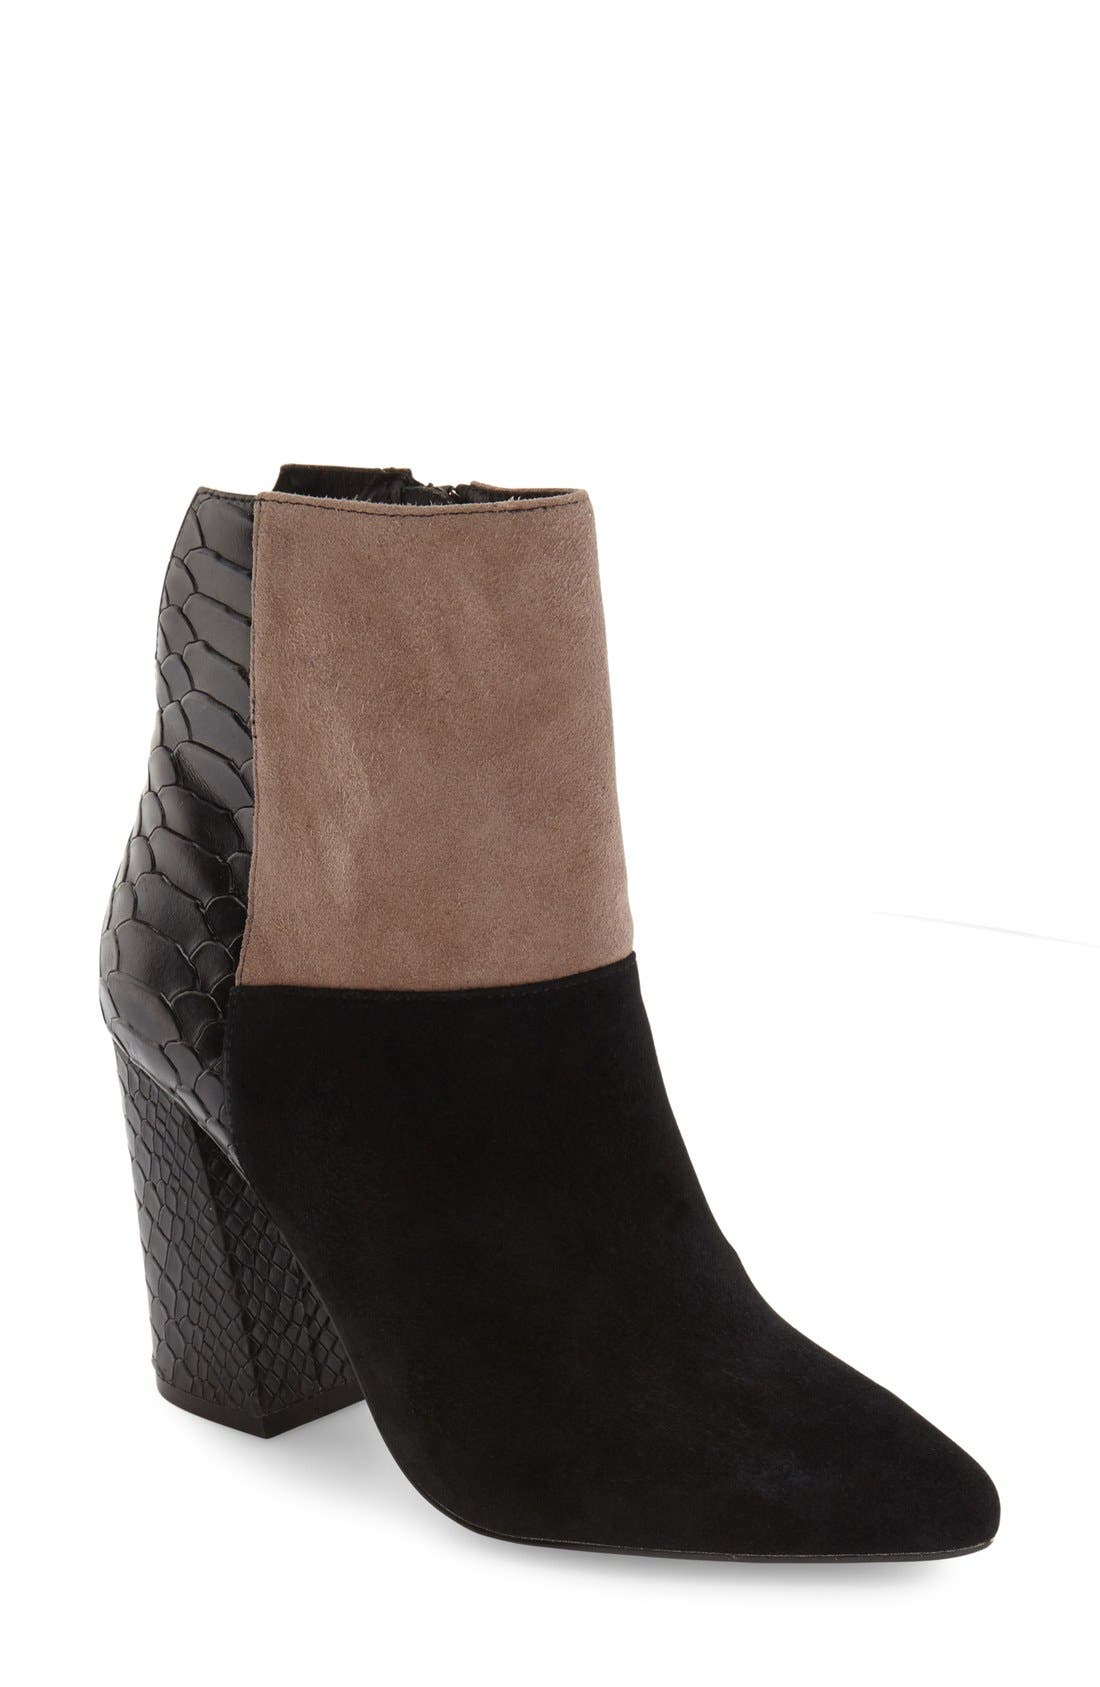 Alternate Image 1 Selected - Kristin Cavallari 'Santorini' Colorblock Bootie (Women)